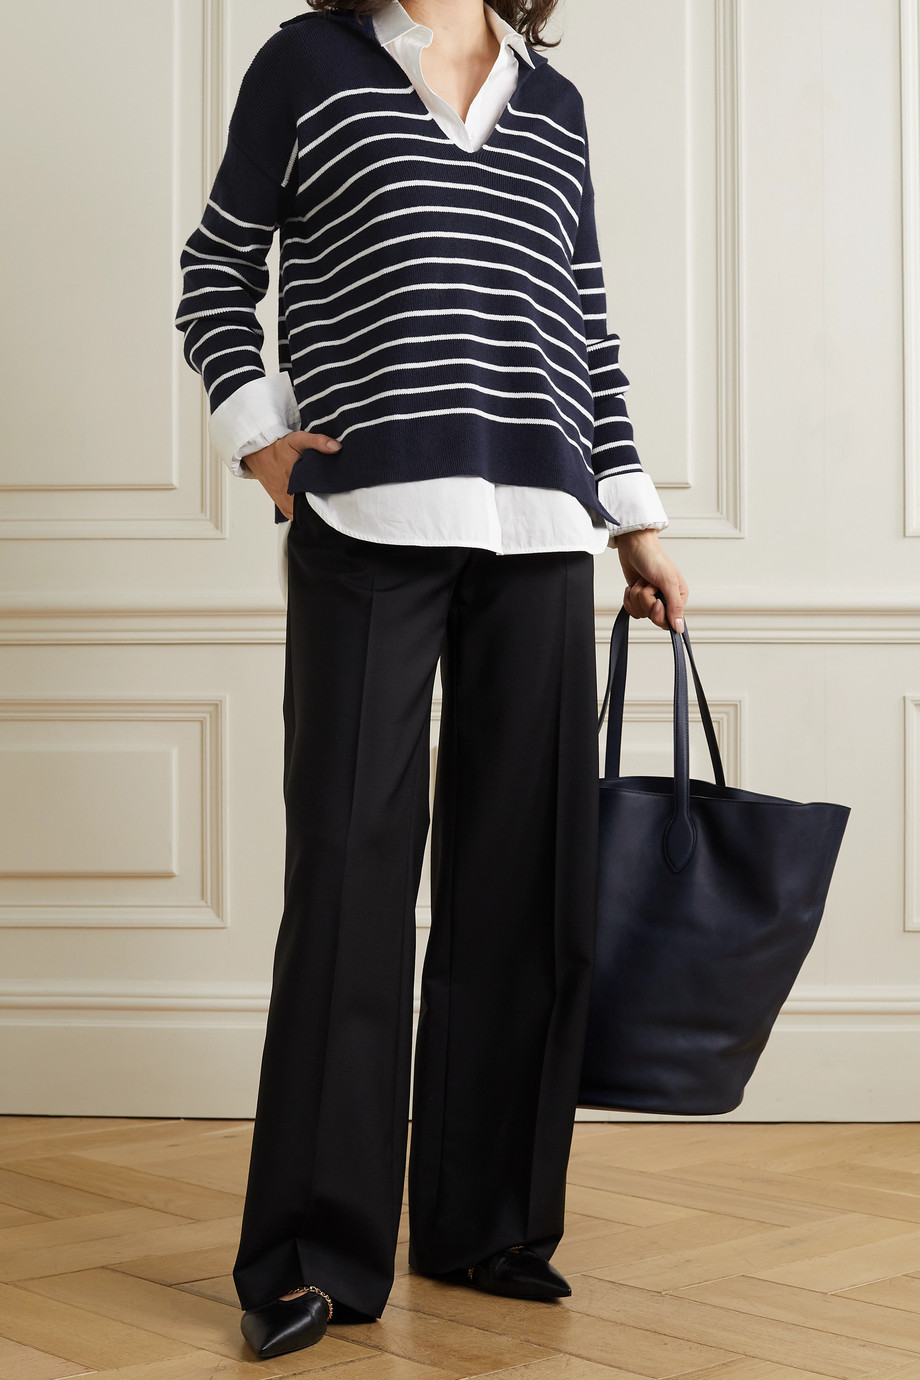 LA LIGNE Striped cotton and cashmere-blend sweater